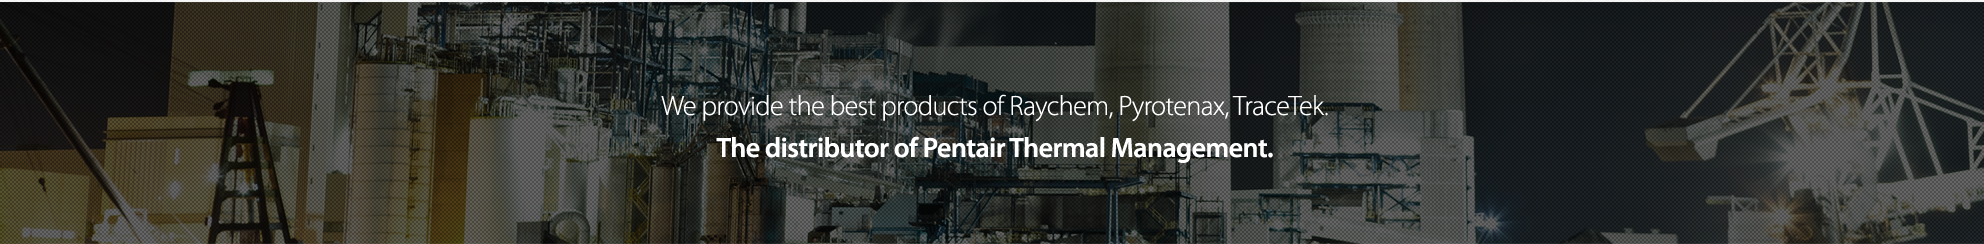 We are producing the best products of Raychem, pyrotenax, isopad, tracetex The representative of the United States Korea Tycothermal Controls.